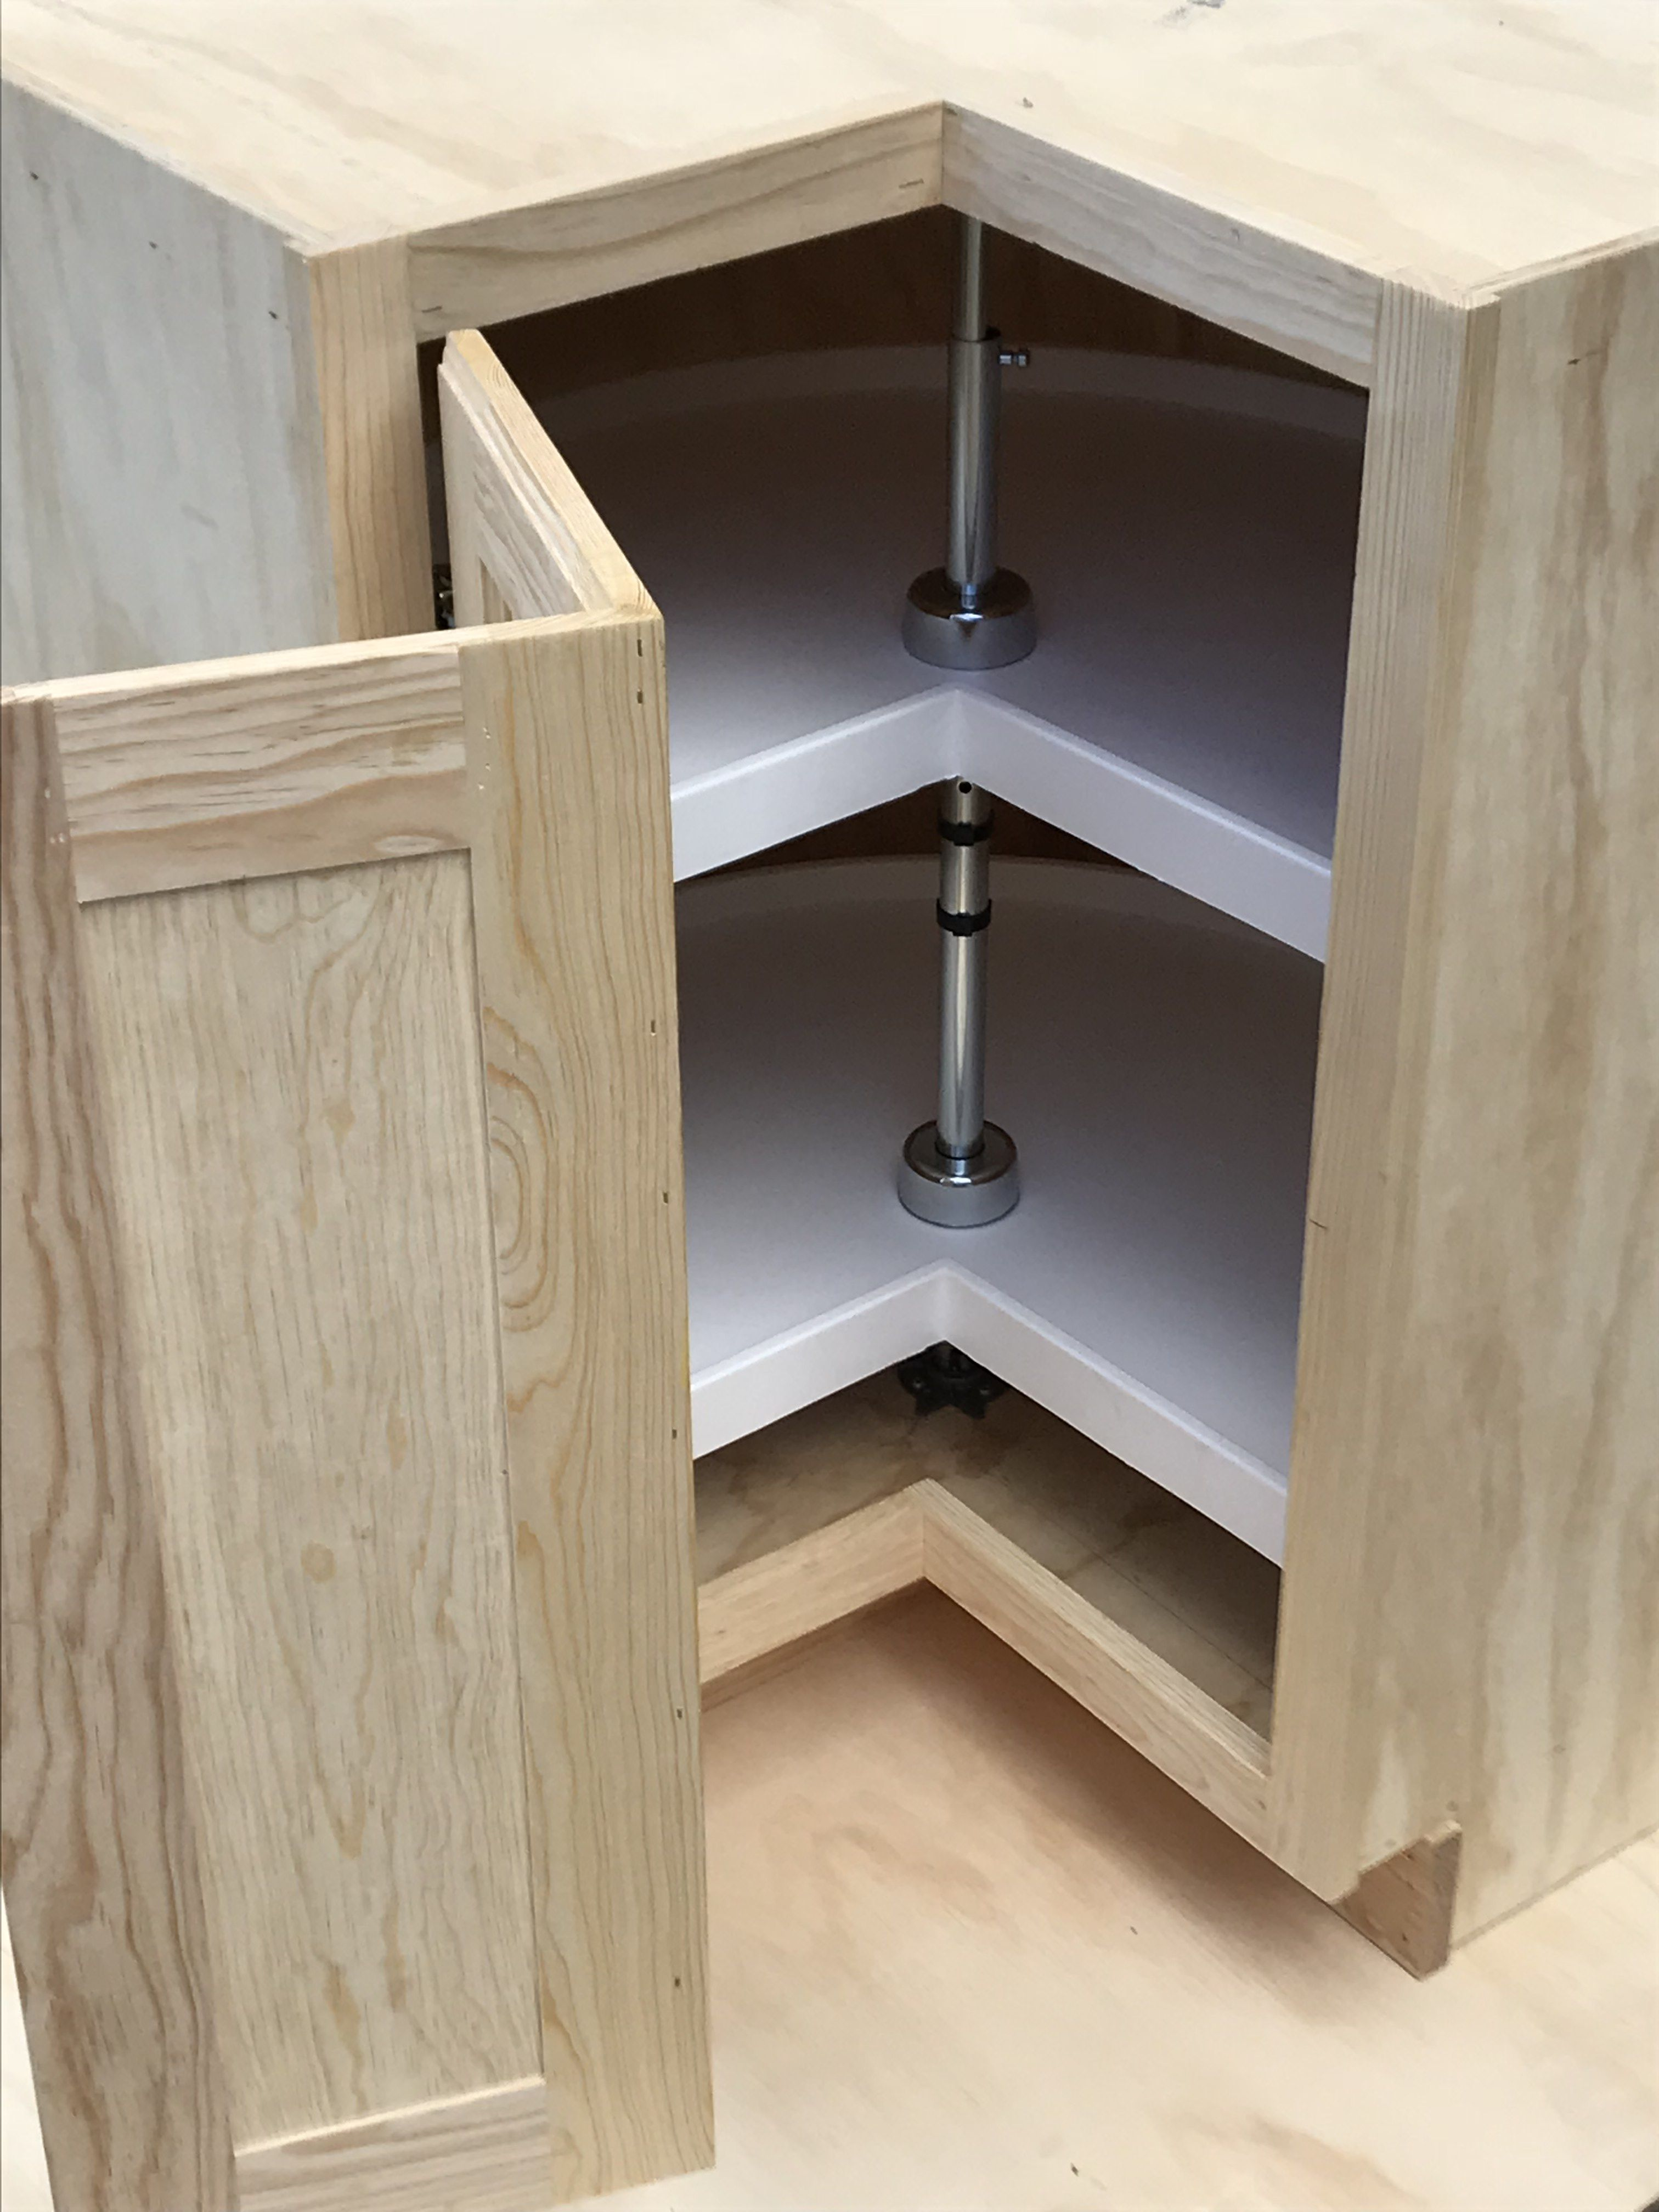 Merveilleux ... Cabinet With Lazy Susan. WOOD PRODUCTS MFG, INC WP CBLS36